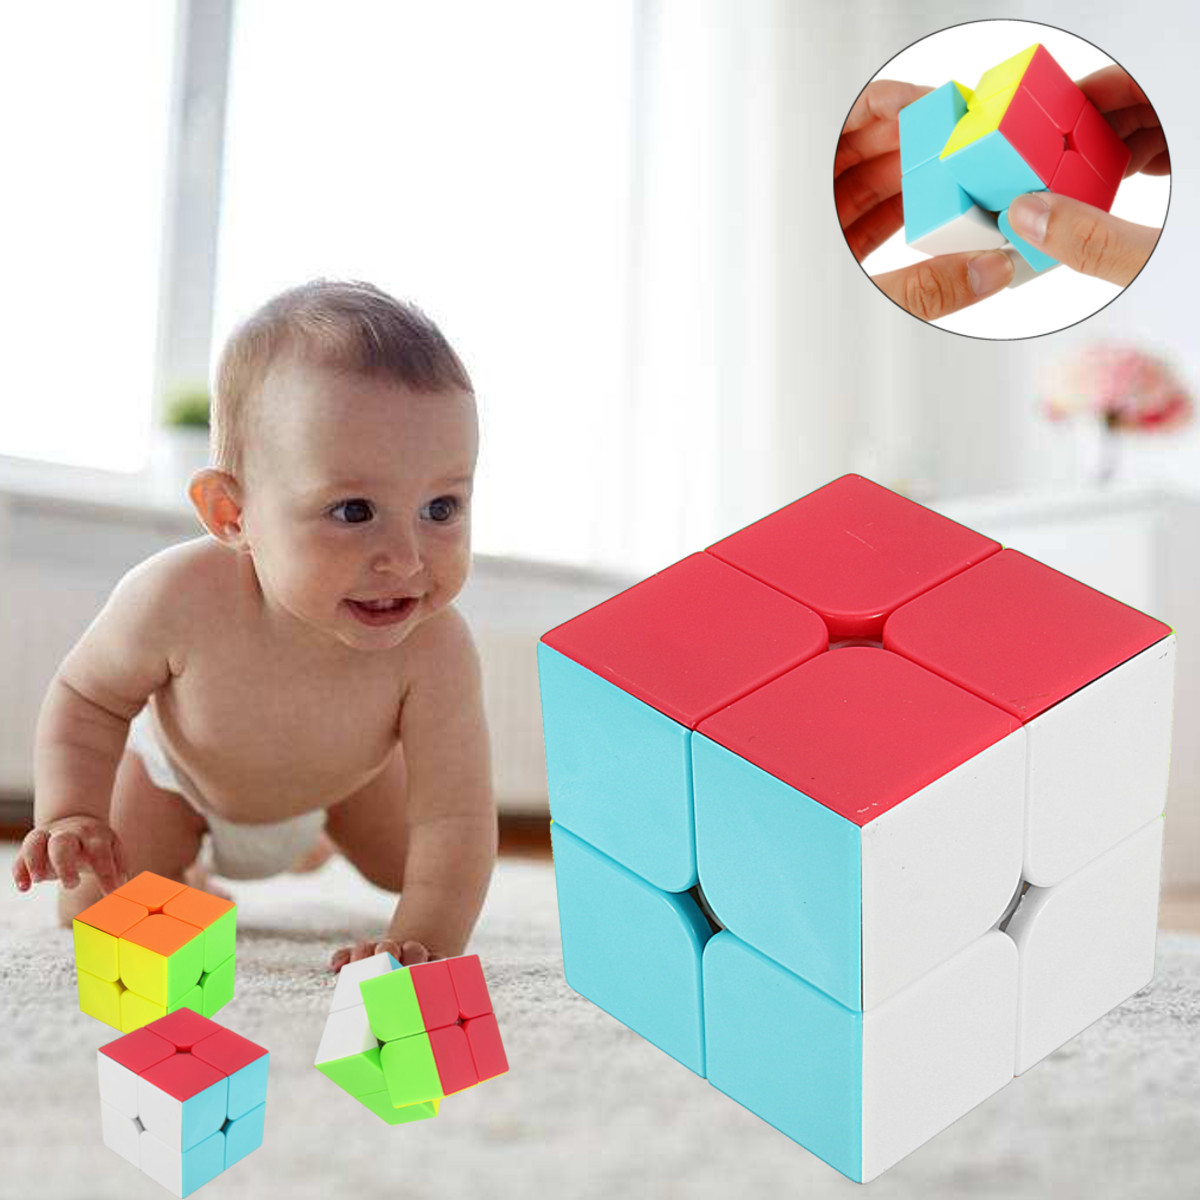 Amazing Cube 2x2 Magic Cube Anti Stress Adults Kids Puzzle Toy Vivid Color Square Magic Cube Puzzle Science Education Toy Gift